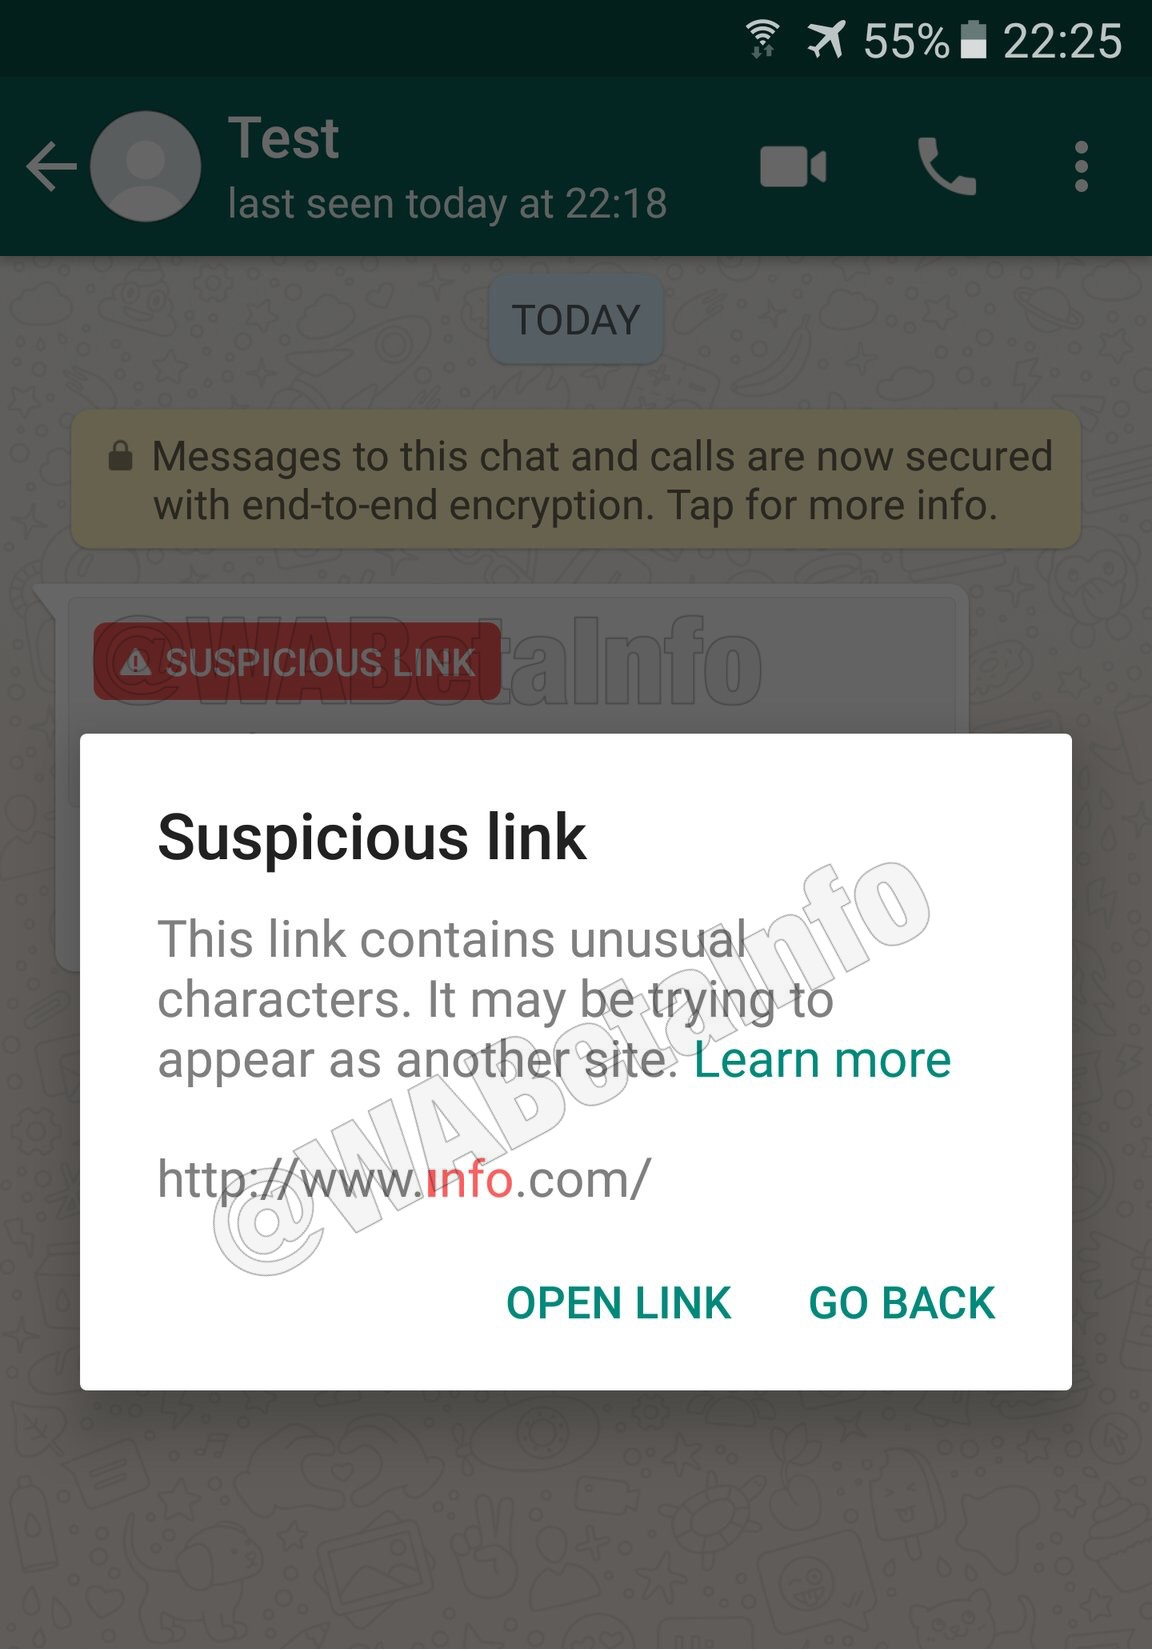 WhatsApp beta for Android 2 18 204+: what's new? | WABetaInfo